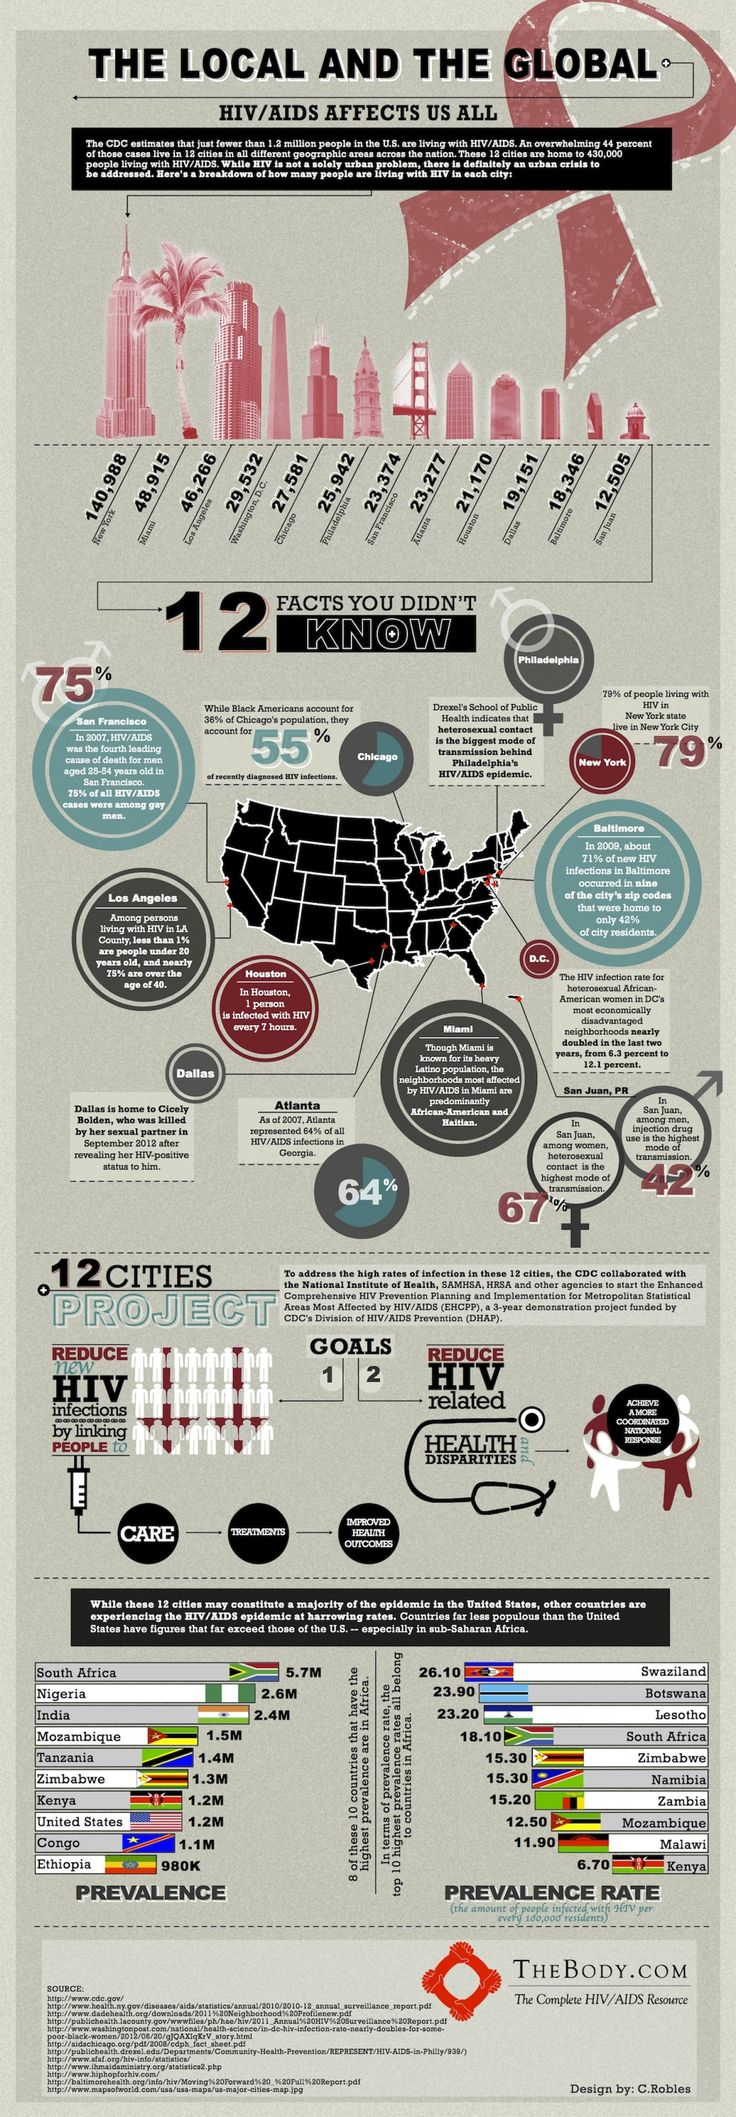 HIV/AIDS - The Local and the Global  Infographic